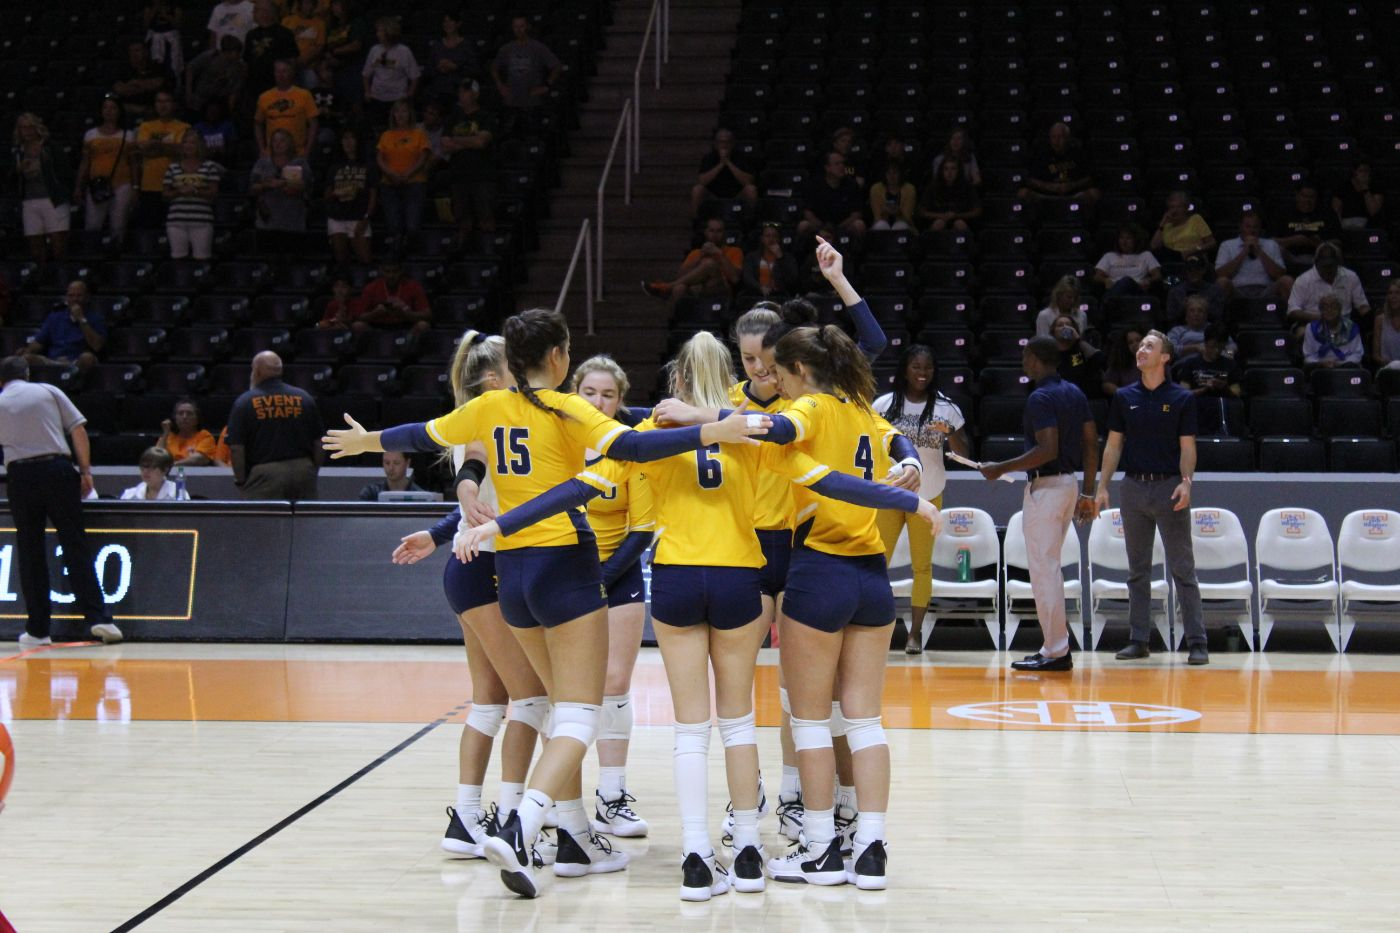 Bucs Begin Conference Play This Weekend